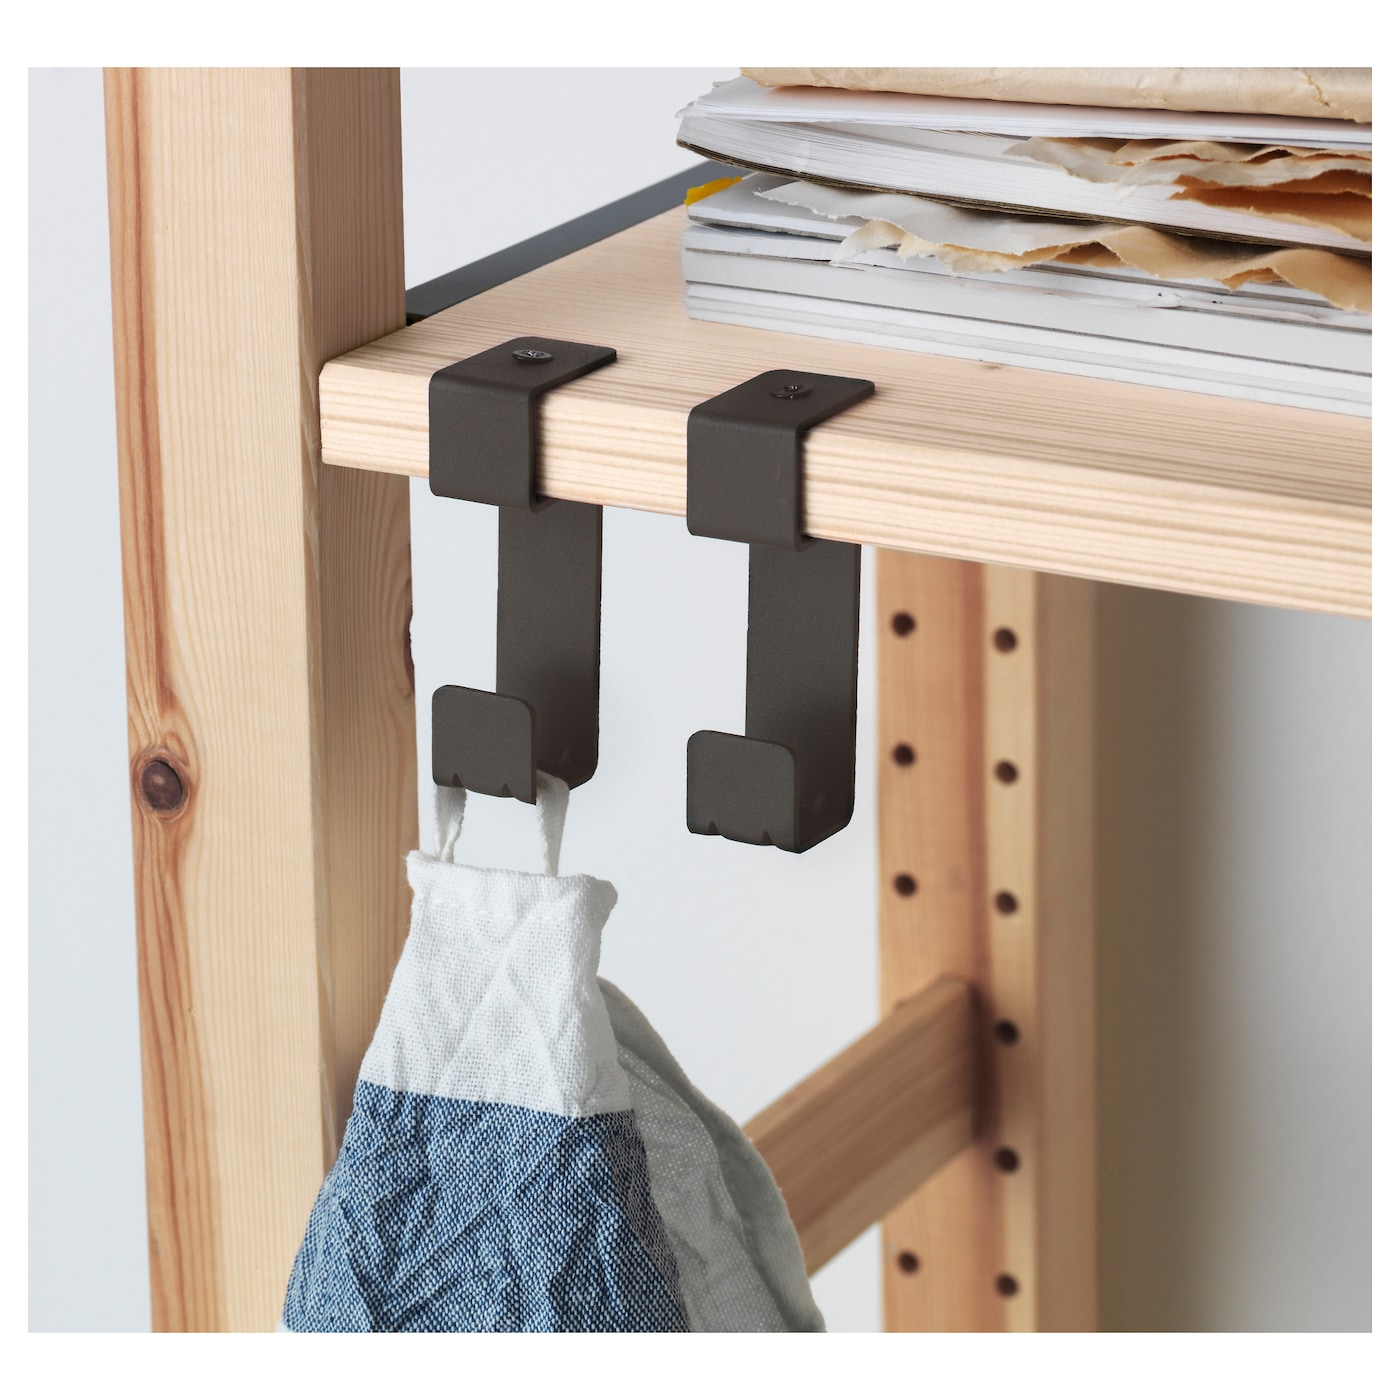 IKEA IVAR 1 section/shelves/drawers You can move shelves and adapt spacing to suit your needs.